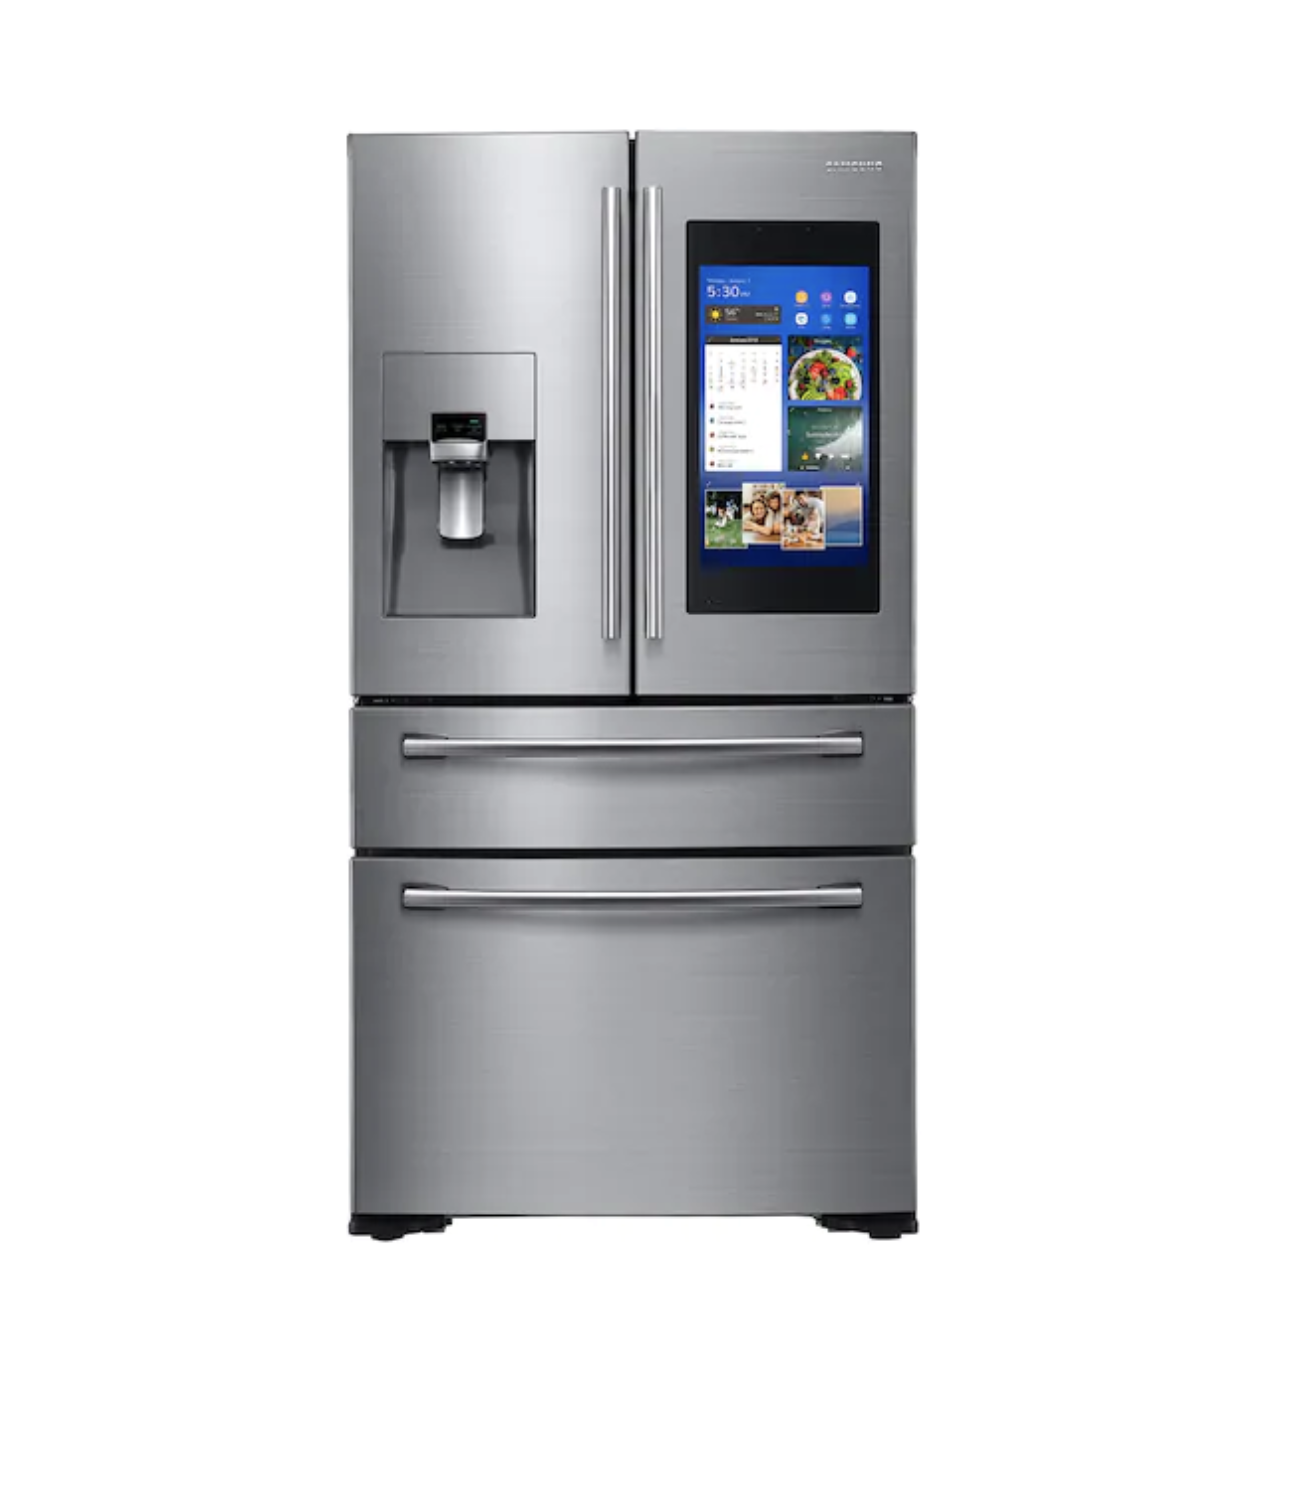 Never miss a thing with this Samsung connected touch screen fridge.